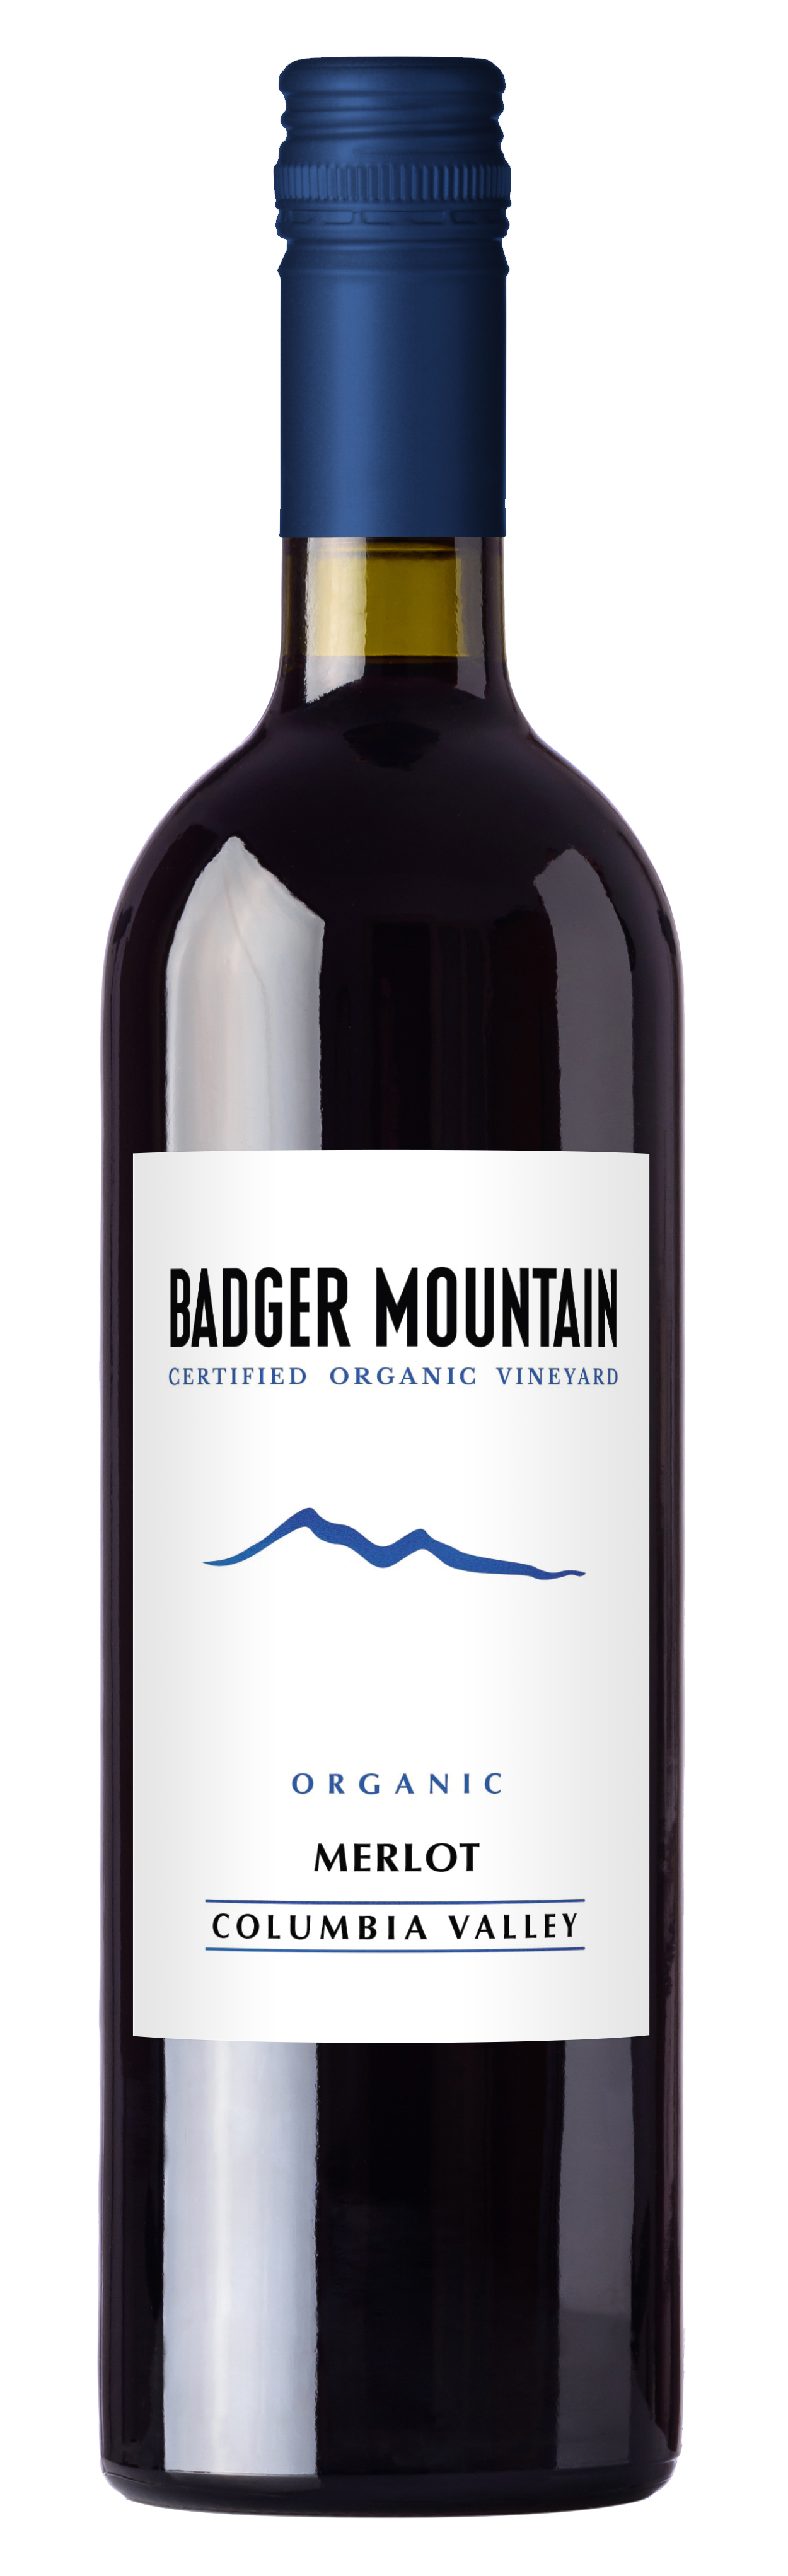 2018 Badger Mountain Merlot, USDA Organic, No Sulfites Added